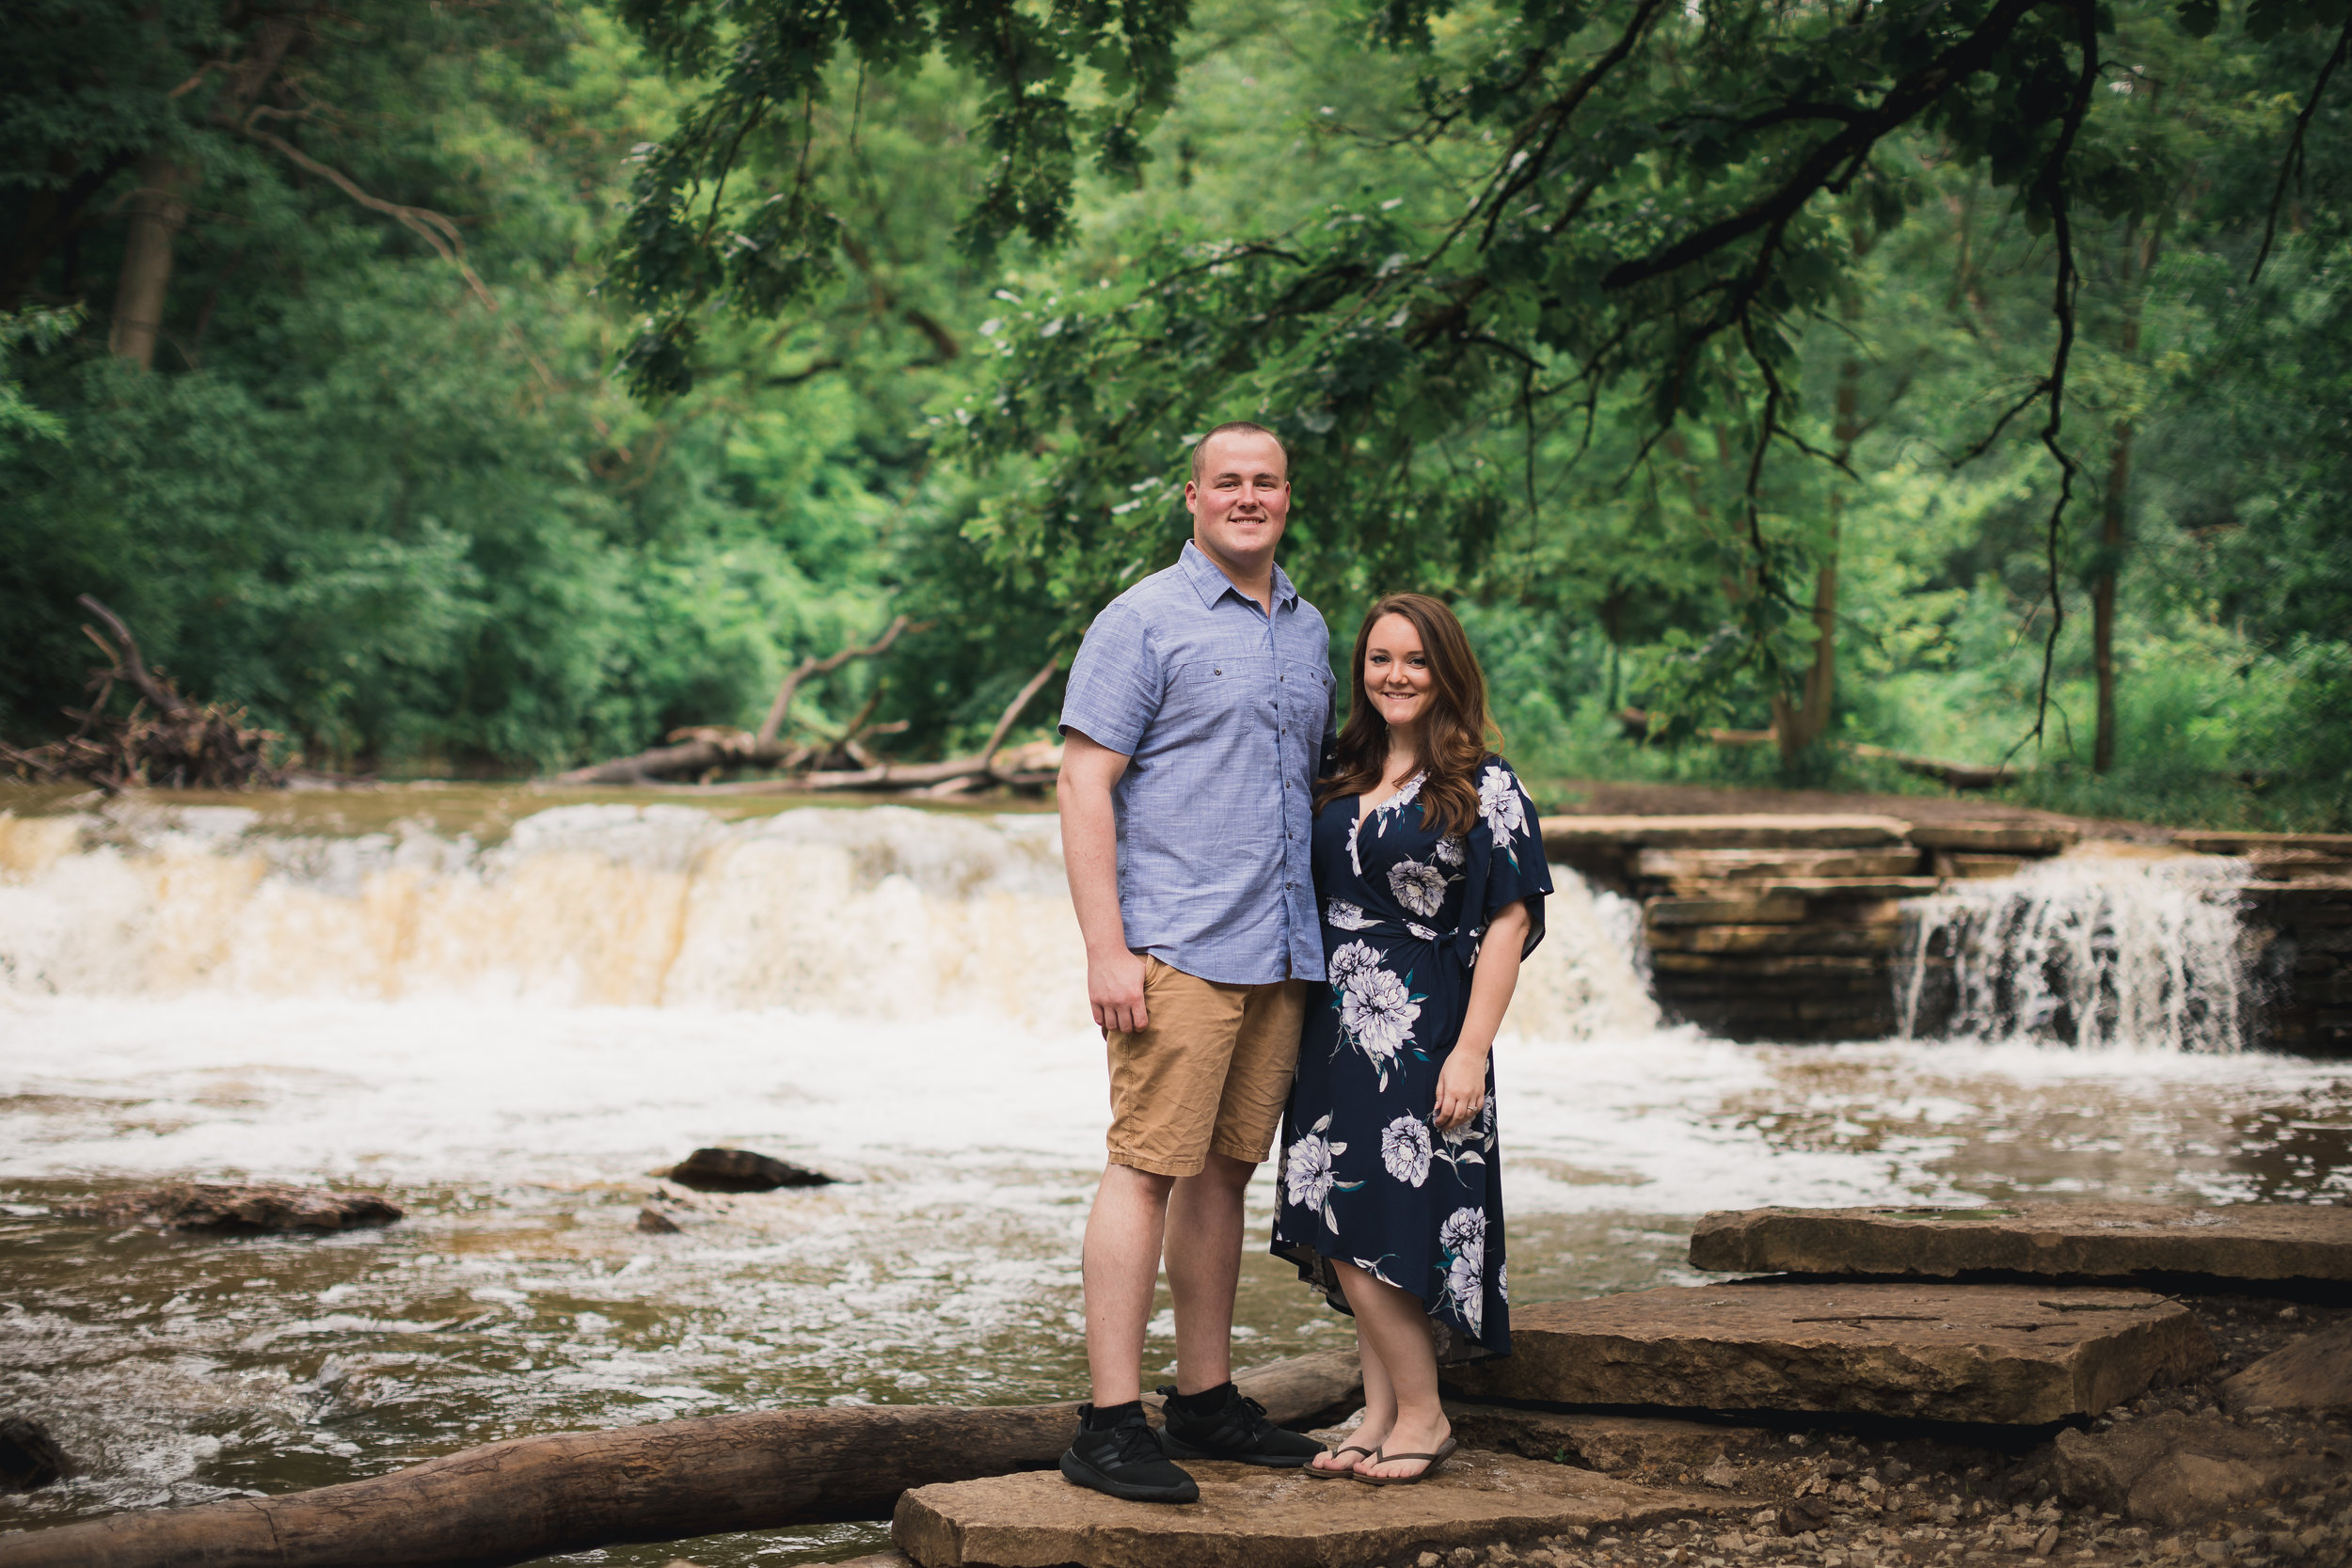 20180623_lauren_and_justin_engagement_01_5R3A0621.jpg